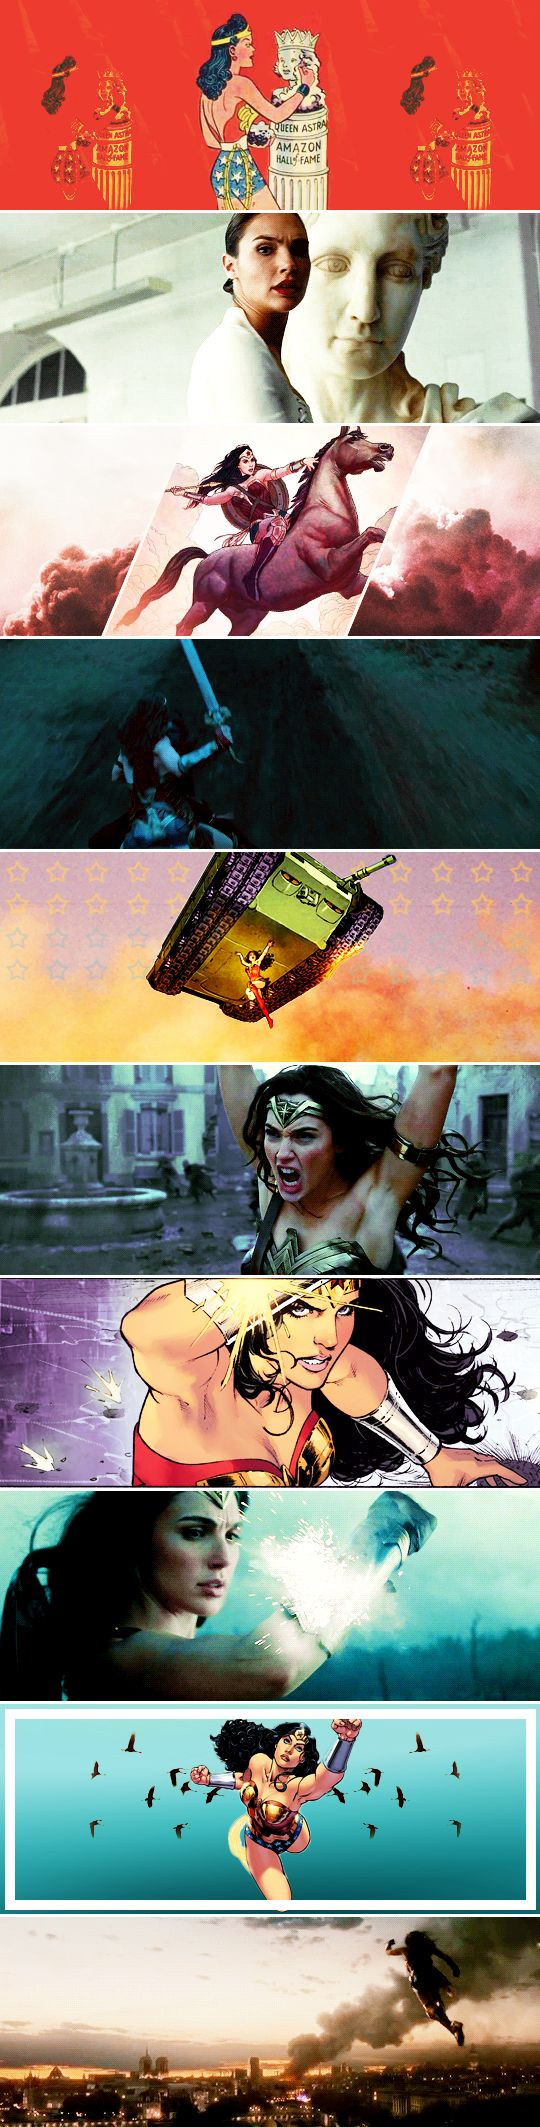 DC Comics Wonder Woman (2017) #Wonder_Woman #Comics #Comic_Books